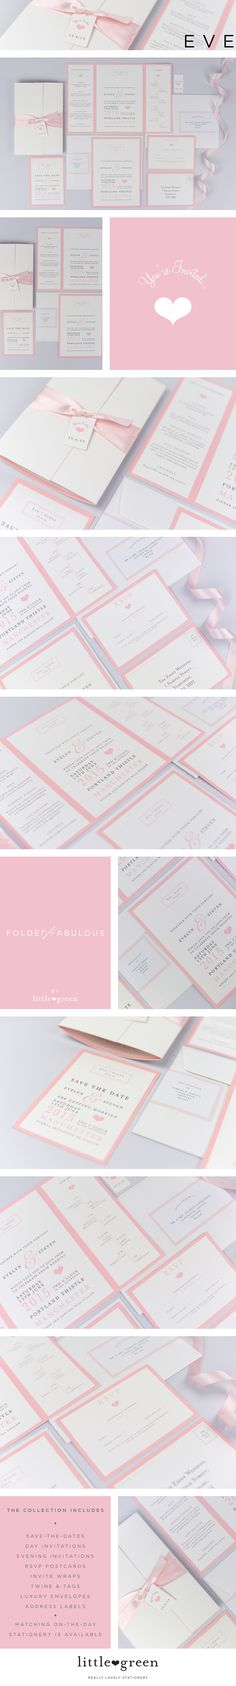 Wedding Invitations - THE EVE COLLECTION from The Little Green Studio